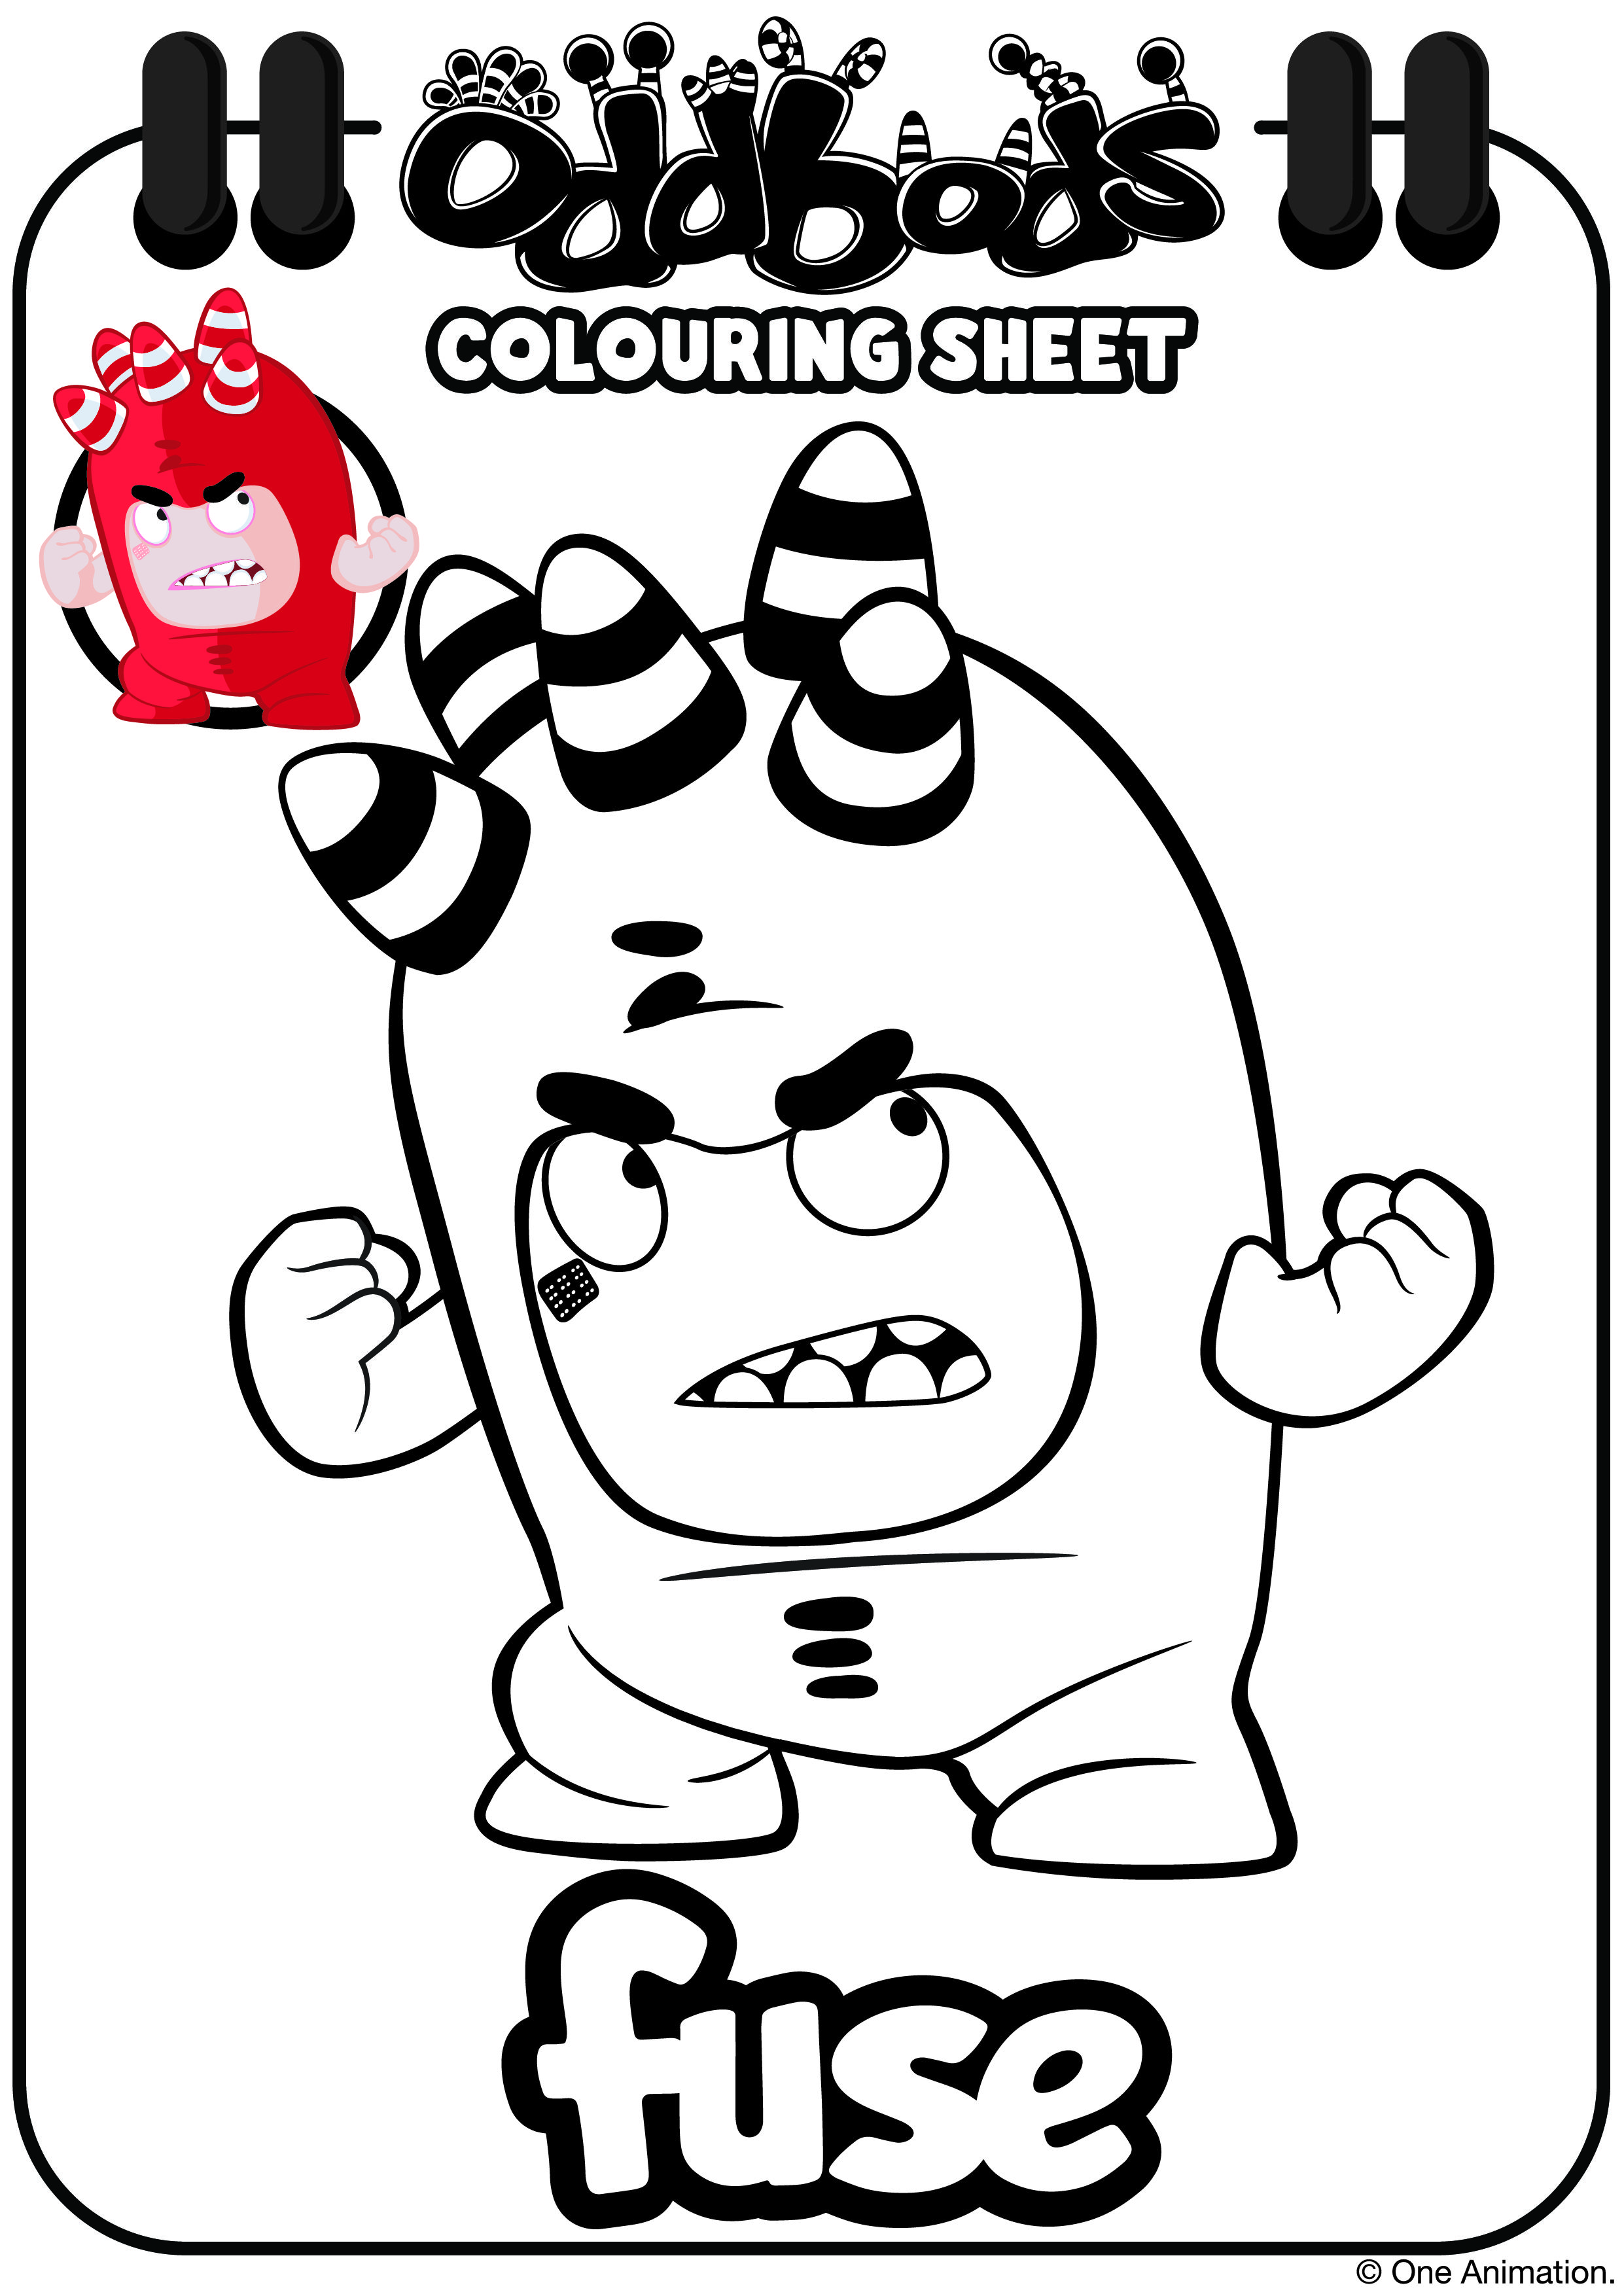 Oddbods Colouring Sheet Fuse Kids Coloring Books Coloring Books Coloring For Kids